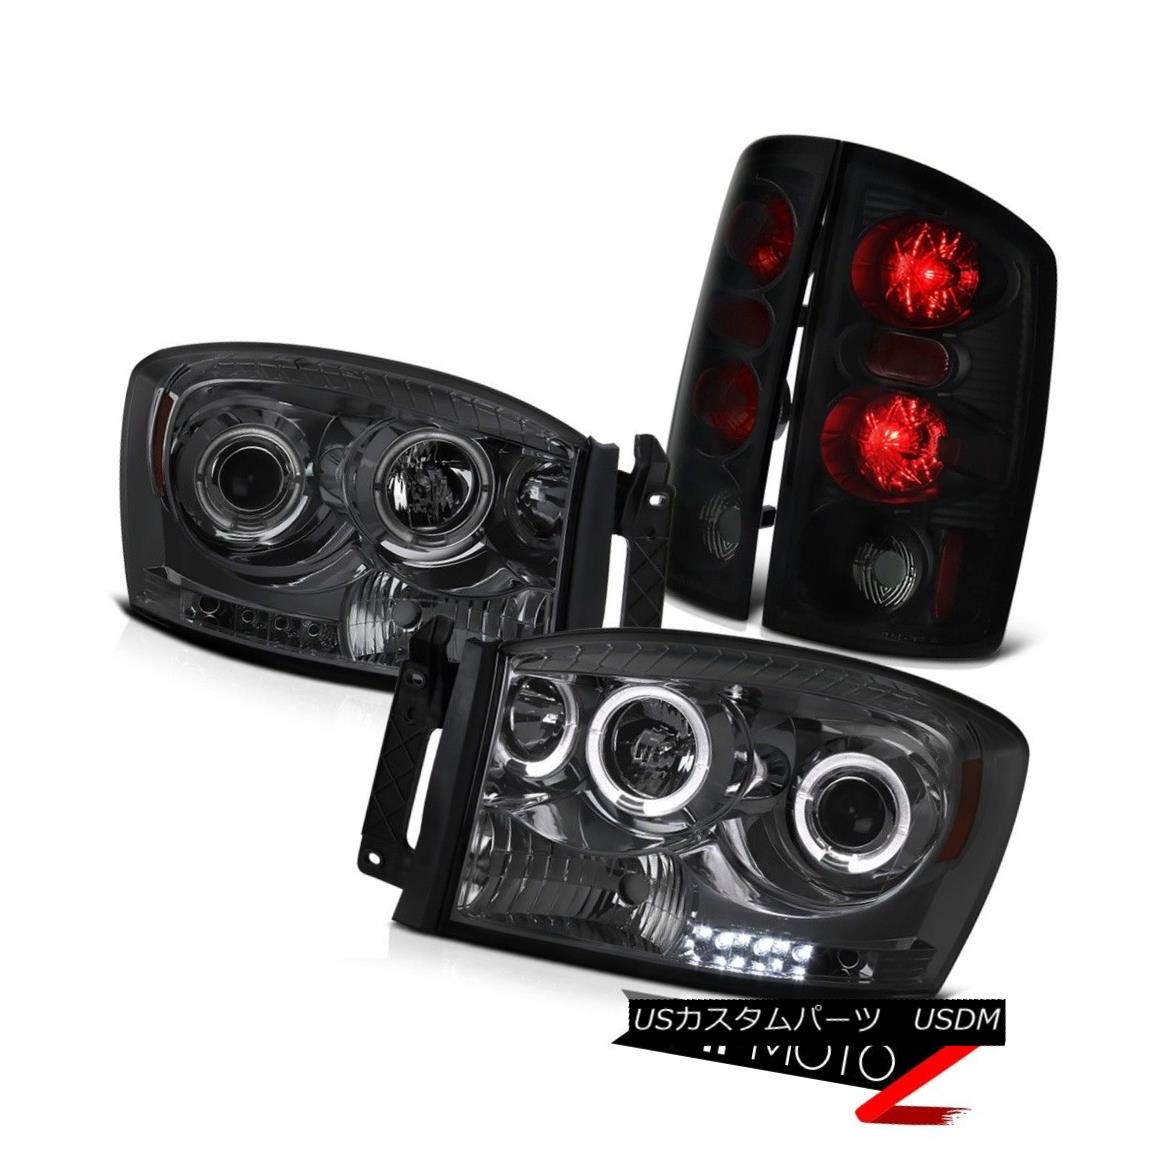 テールライト DODGE Ram 2006 1500 2500 3500 Dark Smoke Headlights Tail Lamp LED DRL Angel Eye DODGE Ram 2006 1500 2500 3500ダークグレーヘッドライトテールランプLED DRL Angel Eye